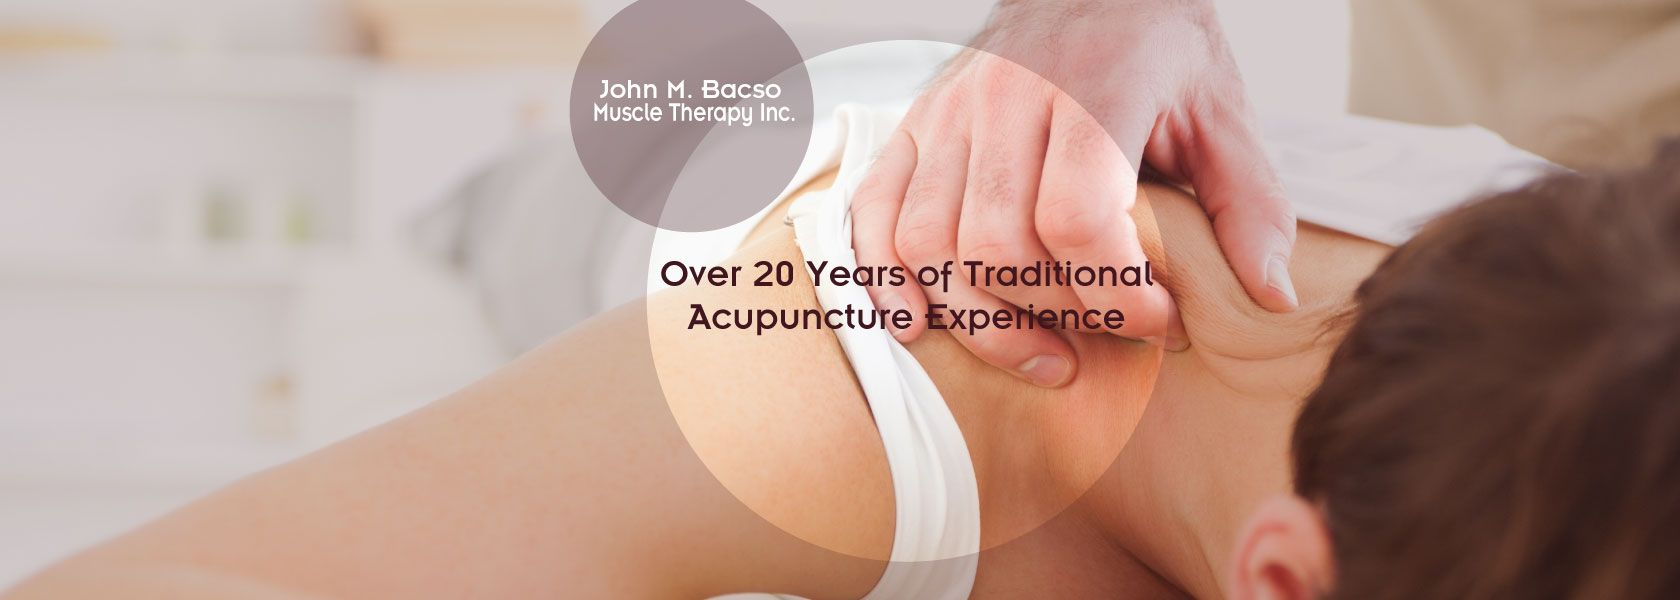 Over 20 years of traditional acupuncture experience | massage